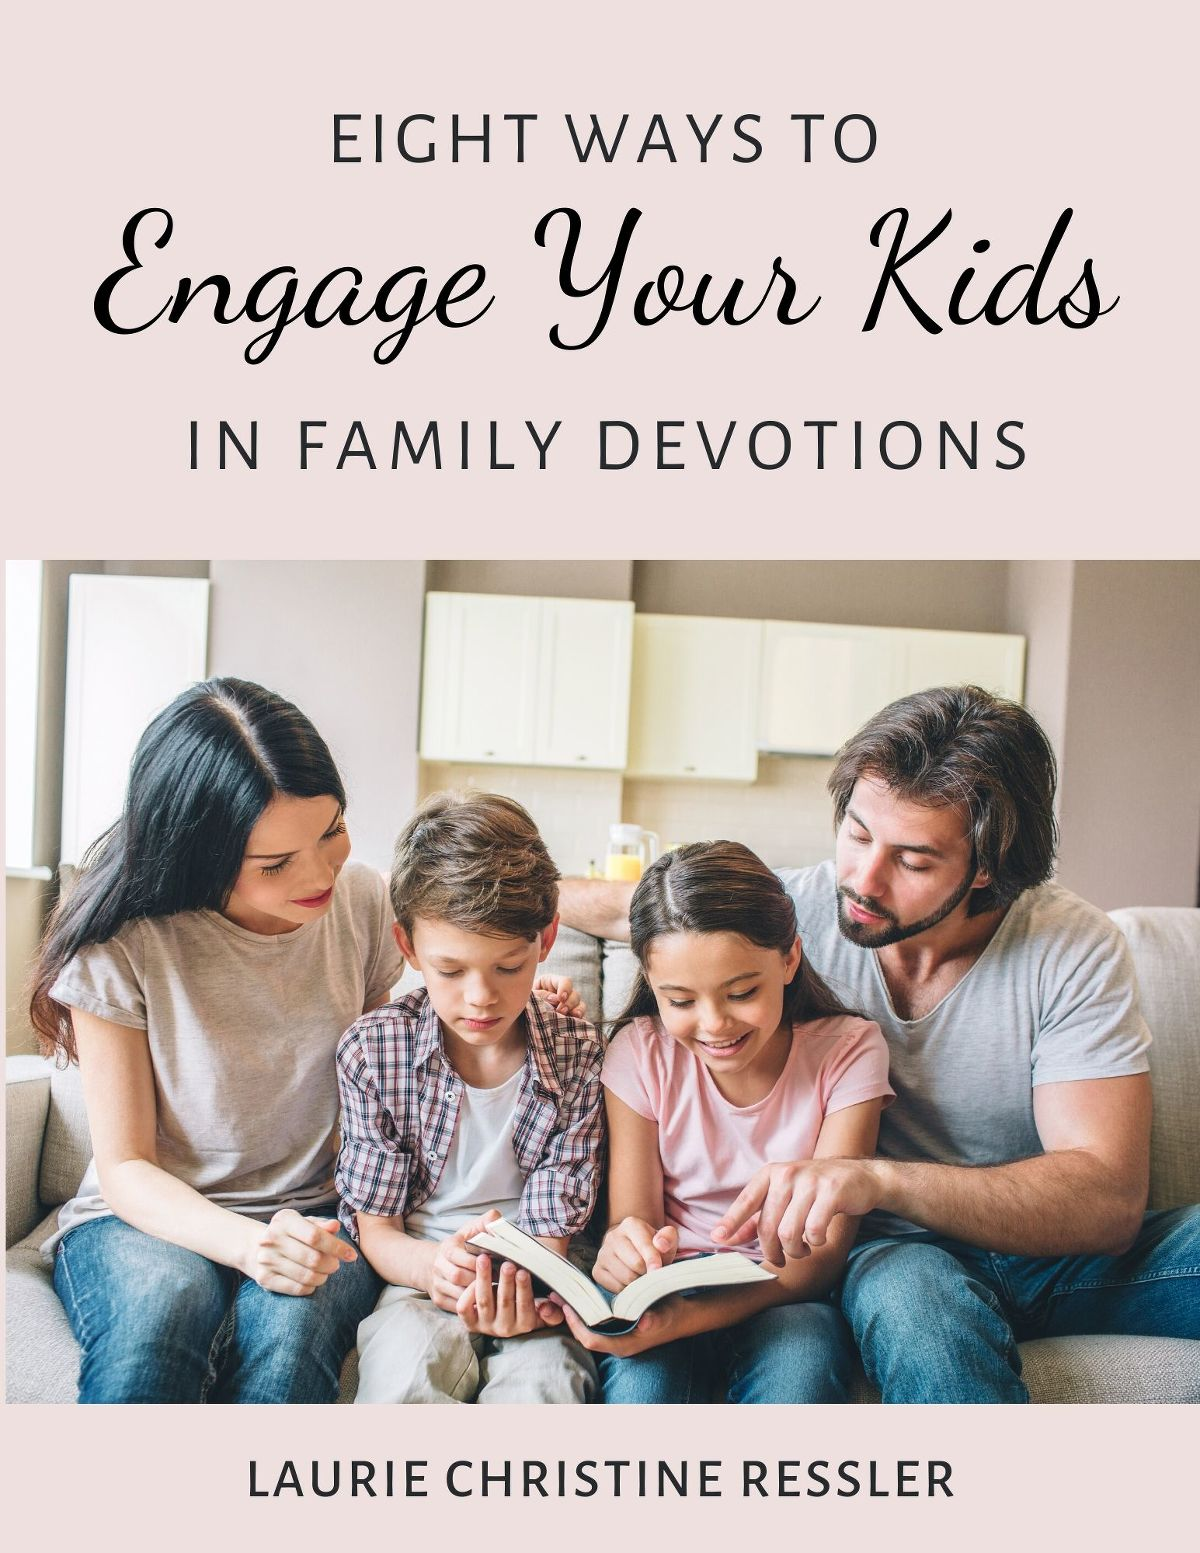 family devotions, family bible story, children's bible story, kids devotional, kids bible story